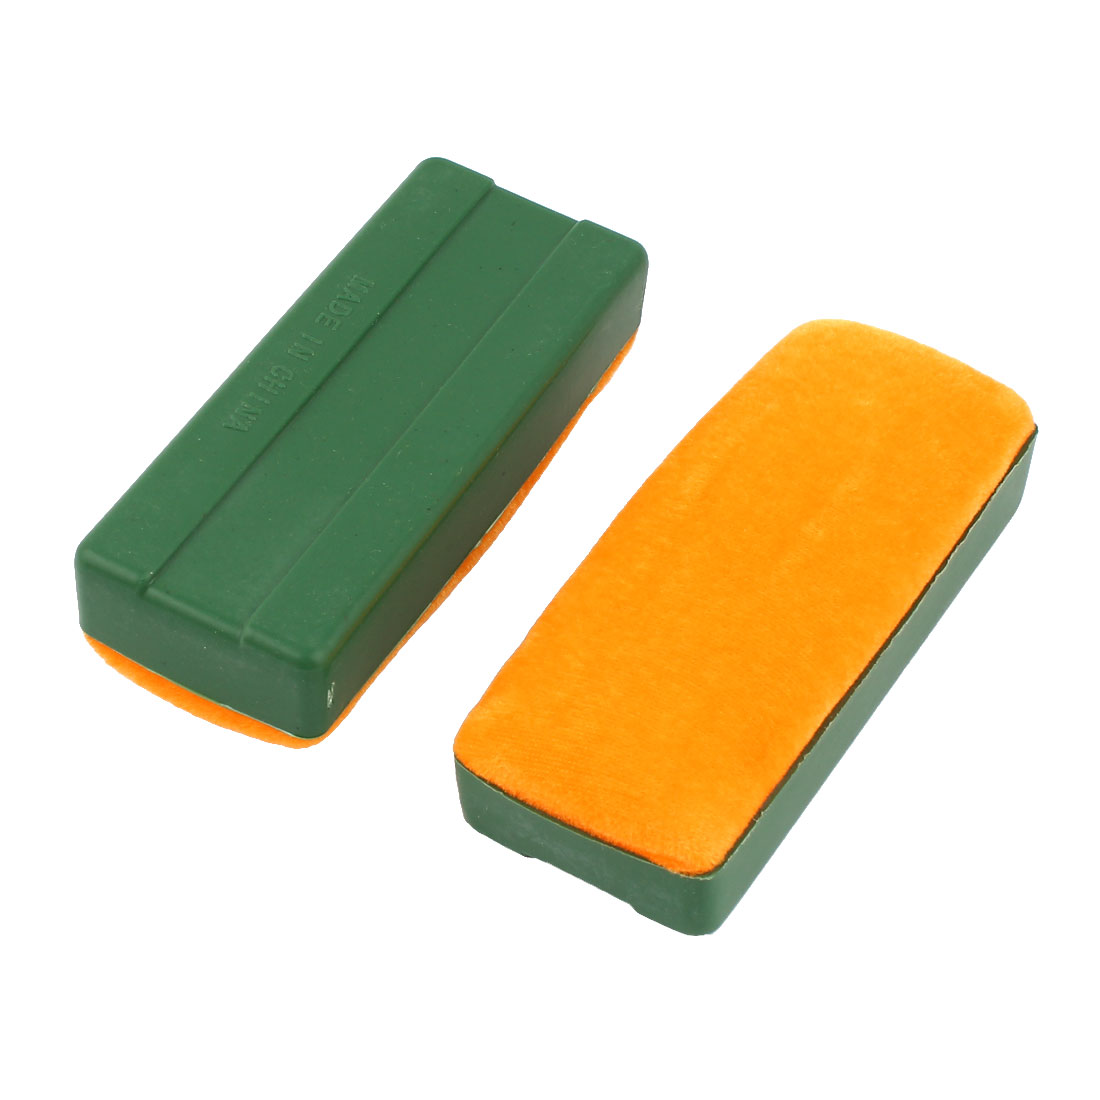 2 Pcs Green Plastic Housing Inside Orange Sponge Whiteboard Eraser 12cmx5cm